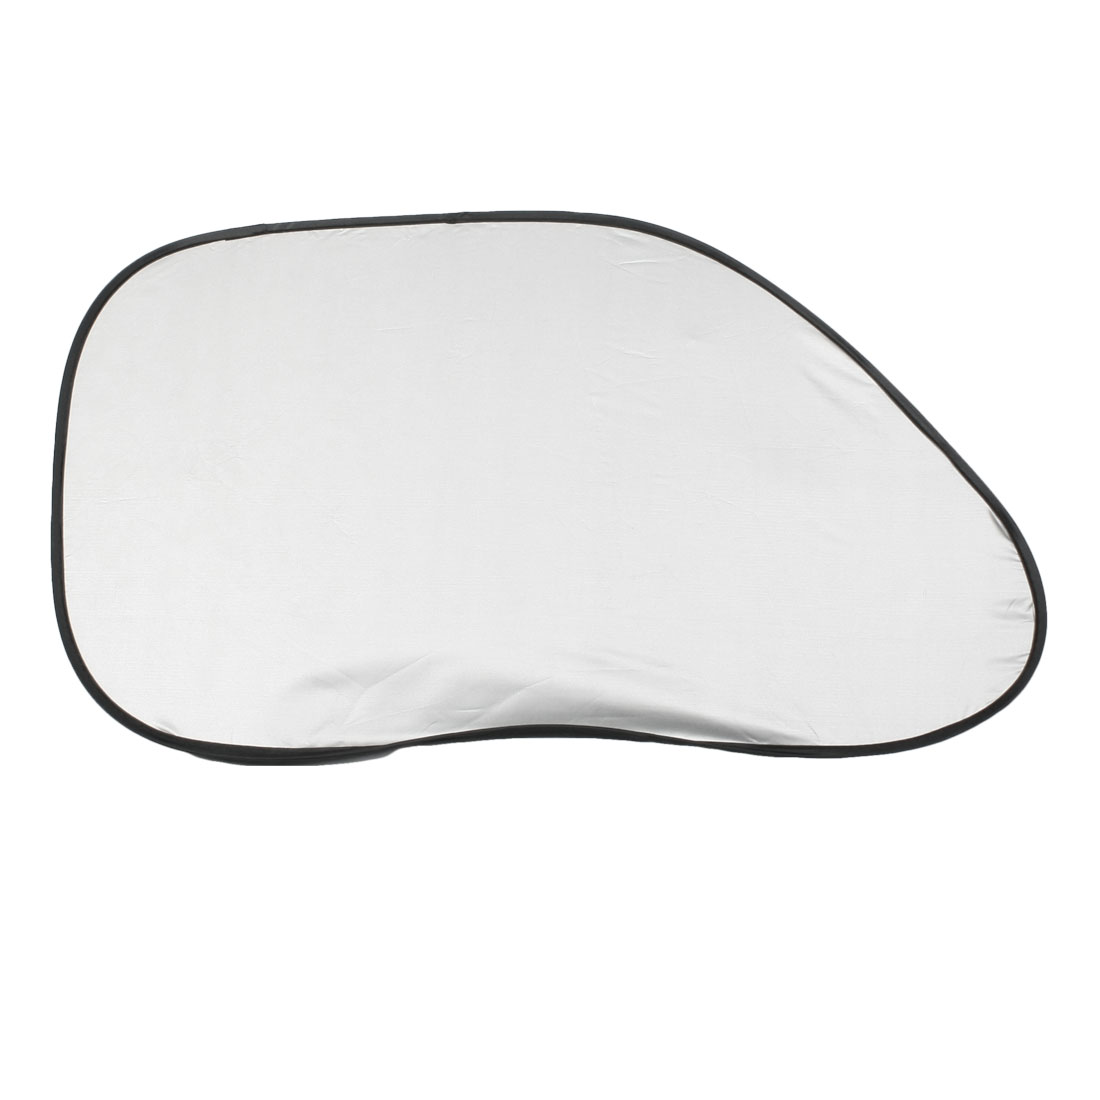 2 Pcs Foldable Side Window Sunshades Sun Visor Shield Black Silver Tone